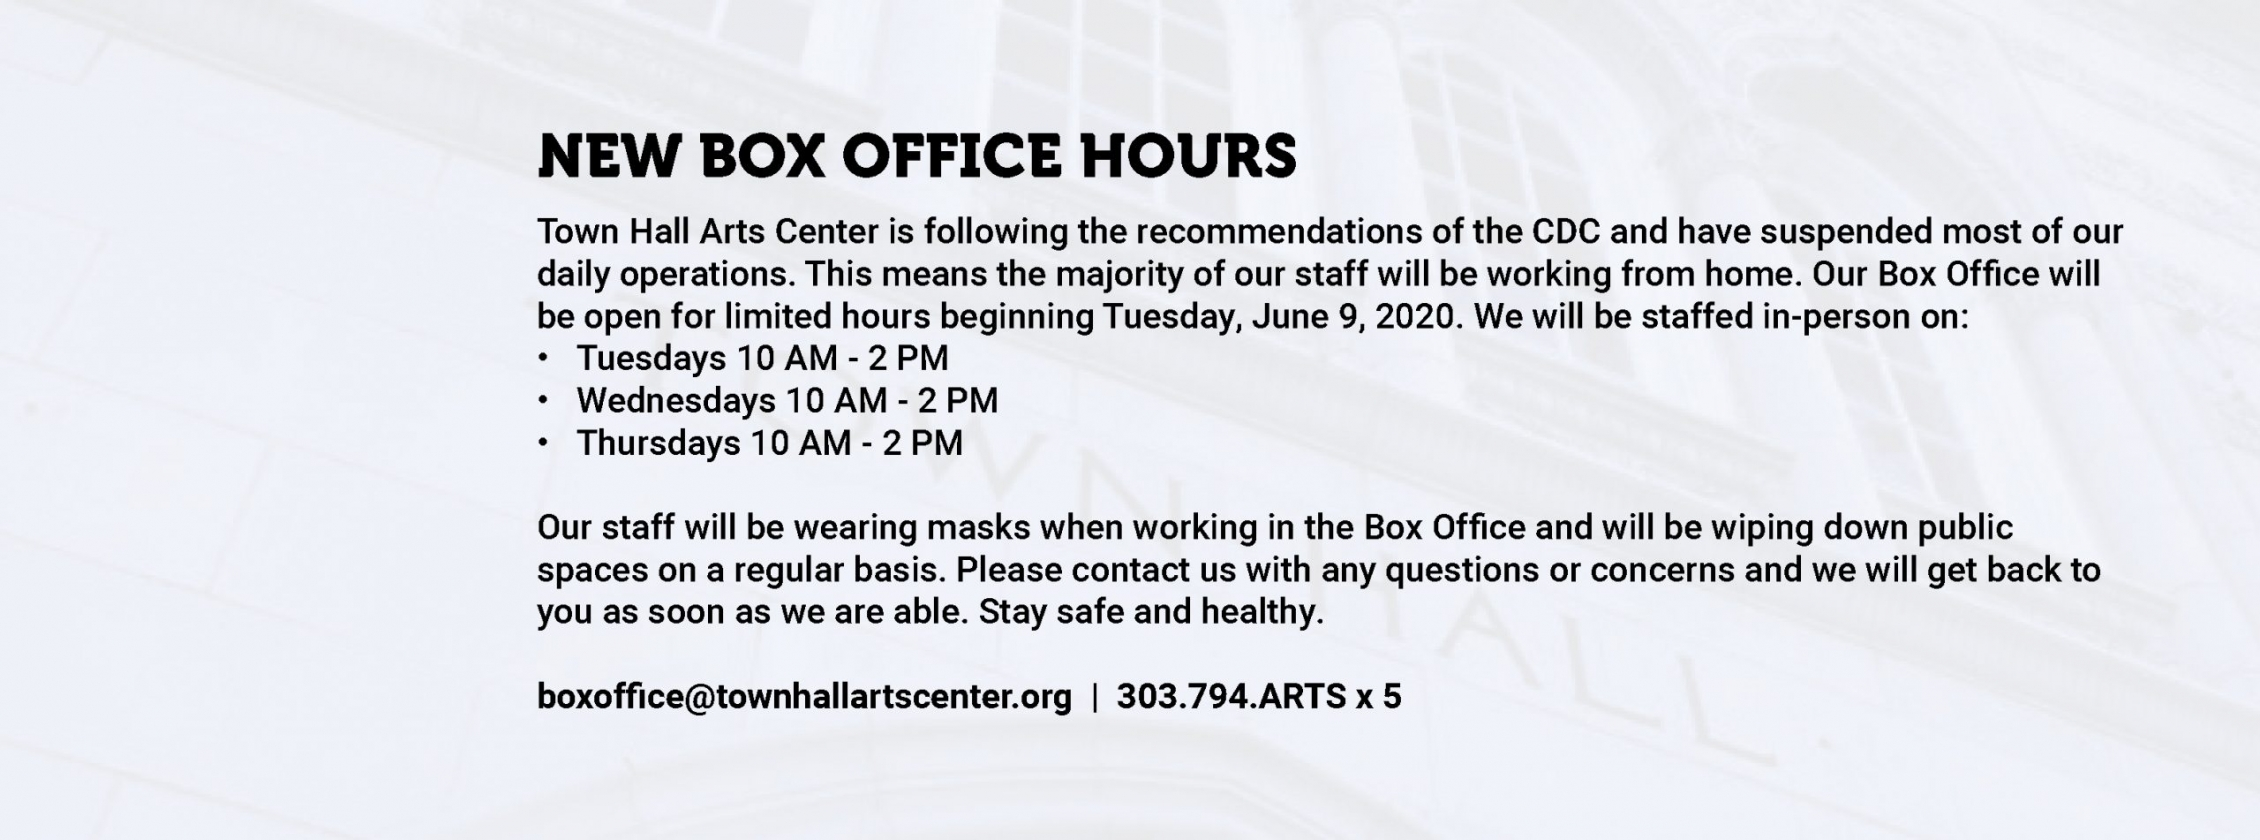 New Box Office Hours